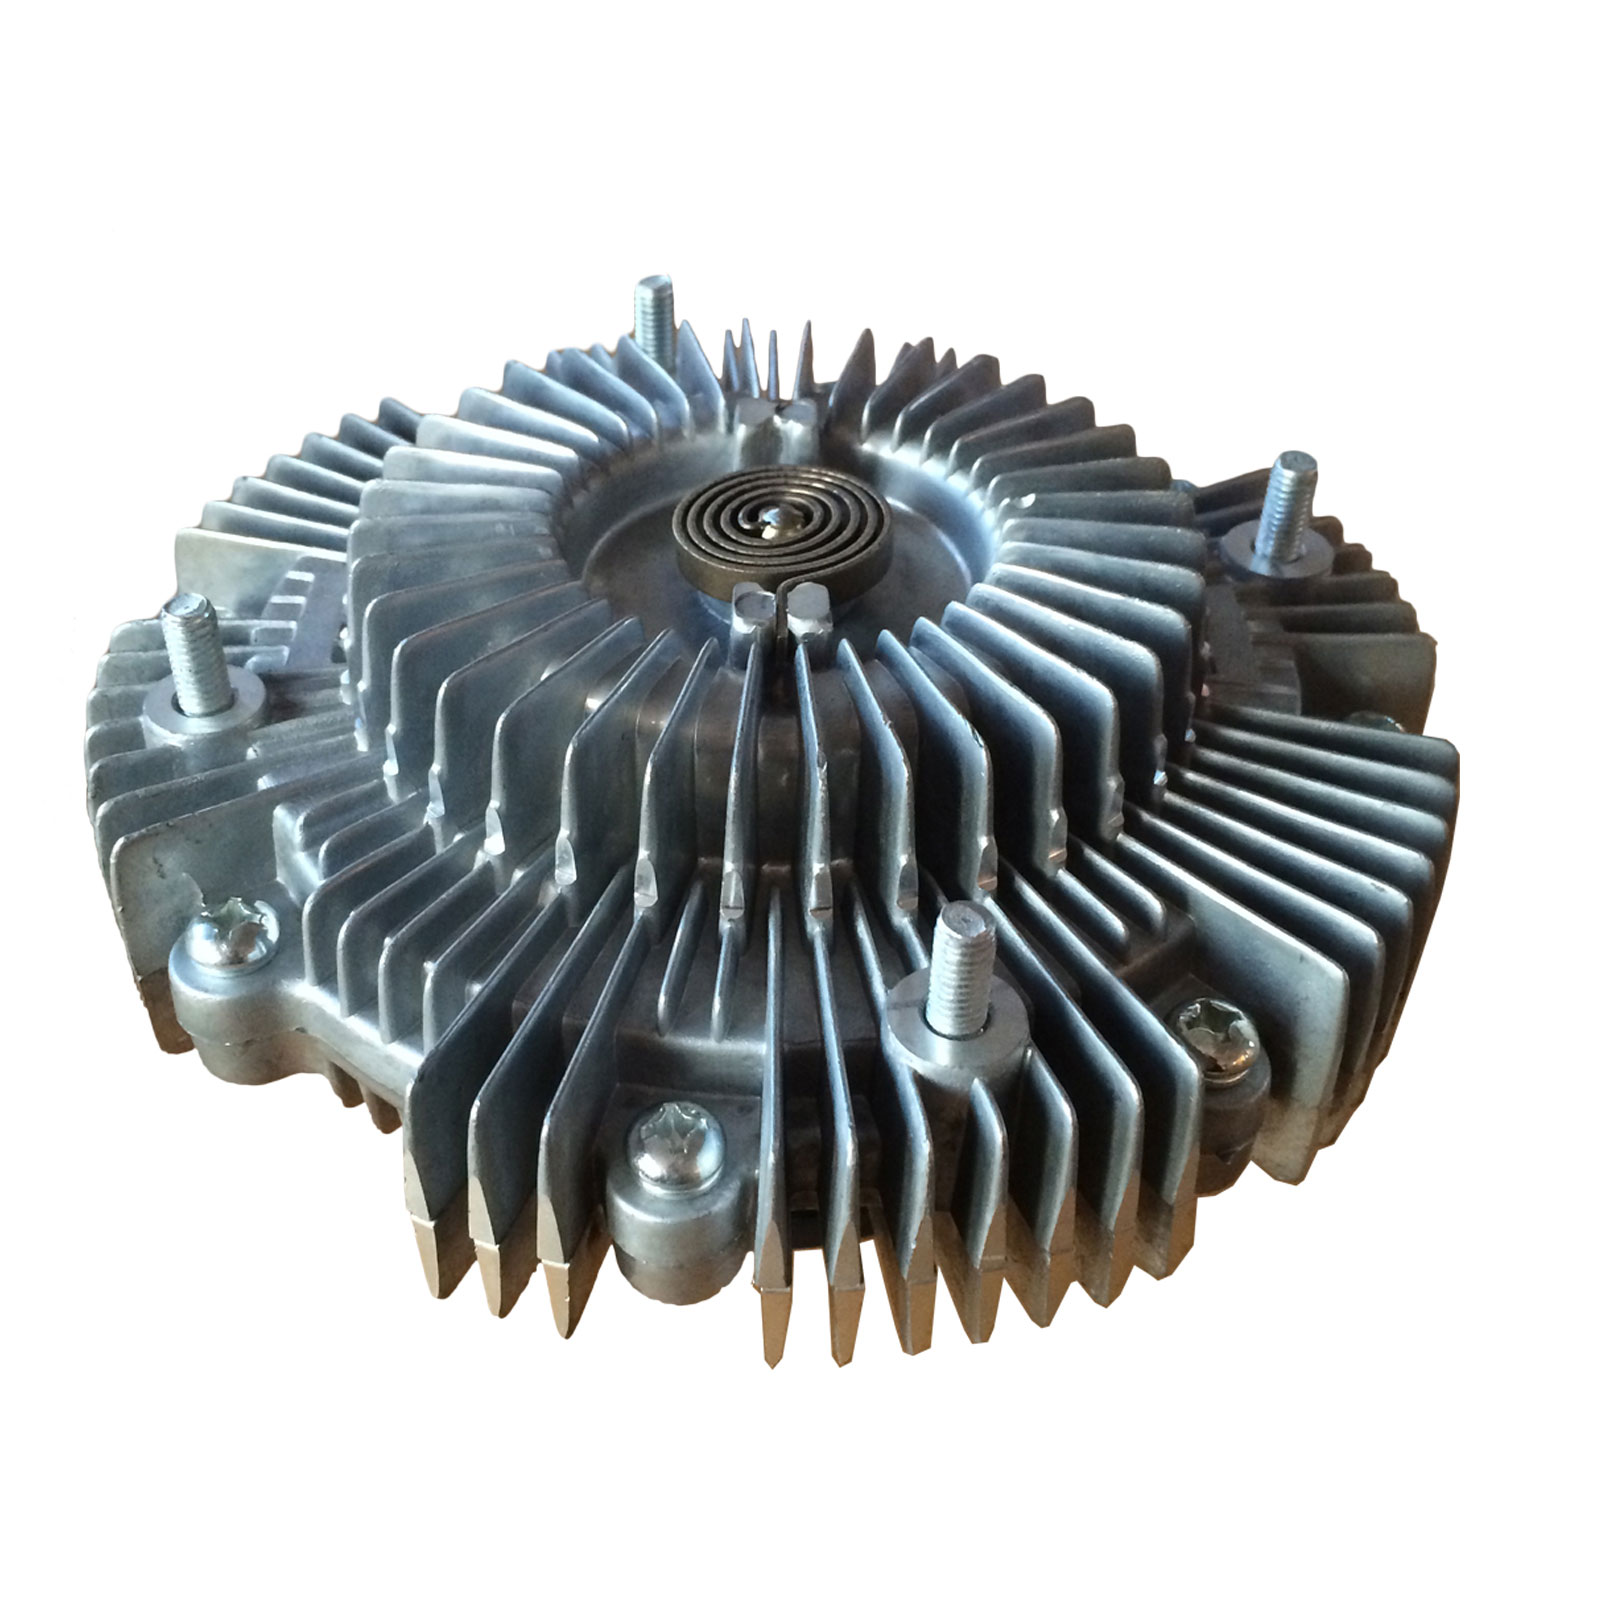 Viscous Fan Clutch Fit Toyota Landcruiser HZJ79 78 105 1HZ 4.2L Diesel image